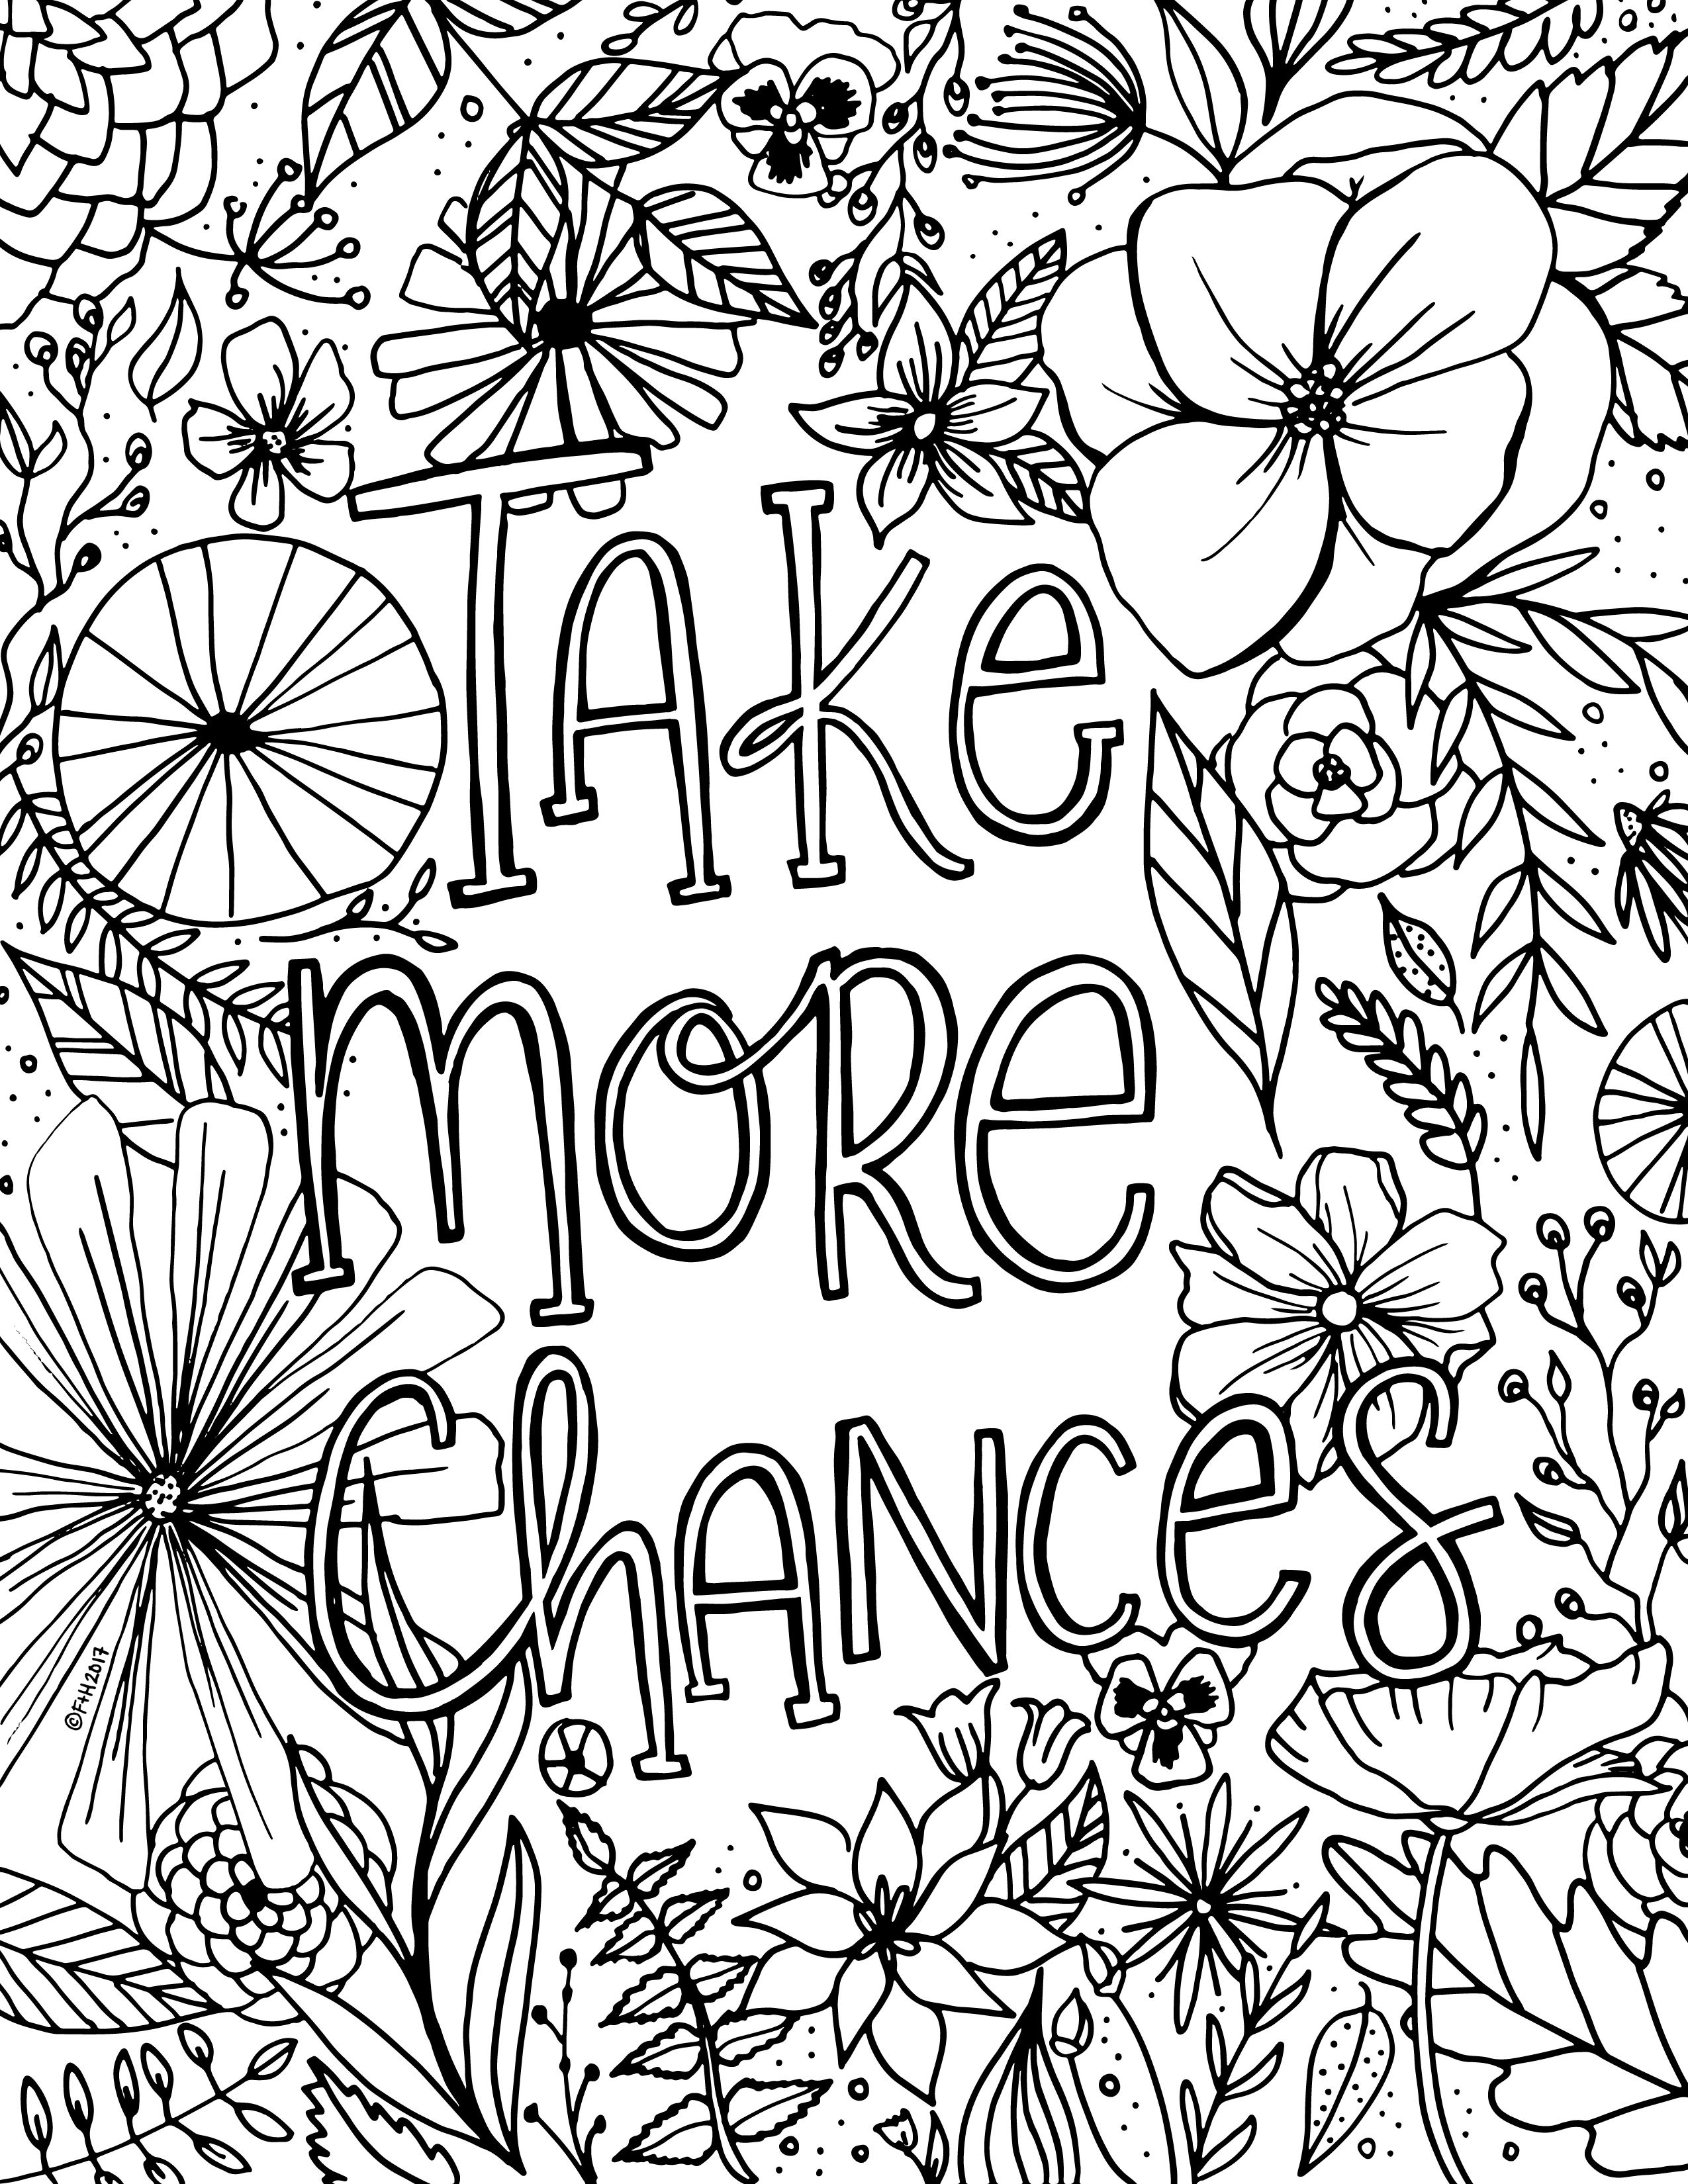 Ta Da The 30 Day Watercolor Challenge Fox Hazel Printable Flower Coloring Pages Quote Coloring Pages Coloring Pages Inspirational